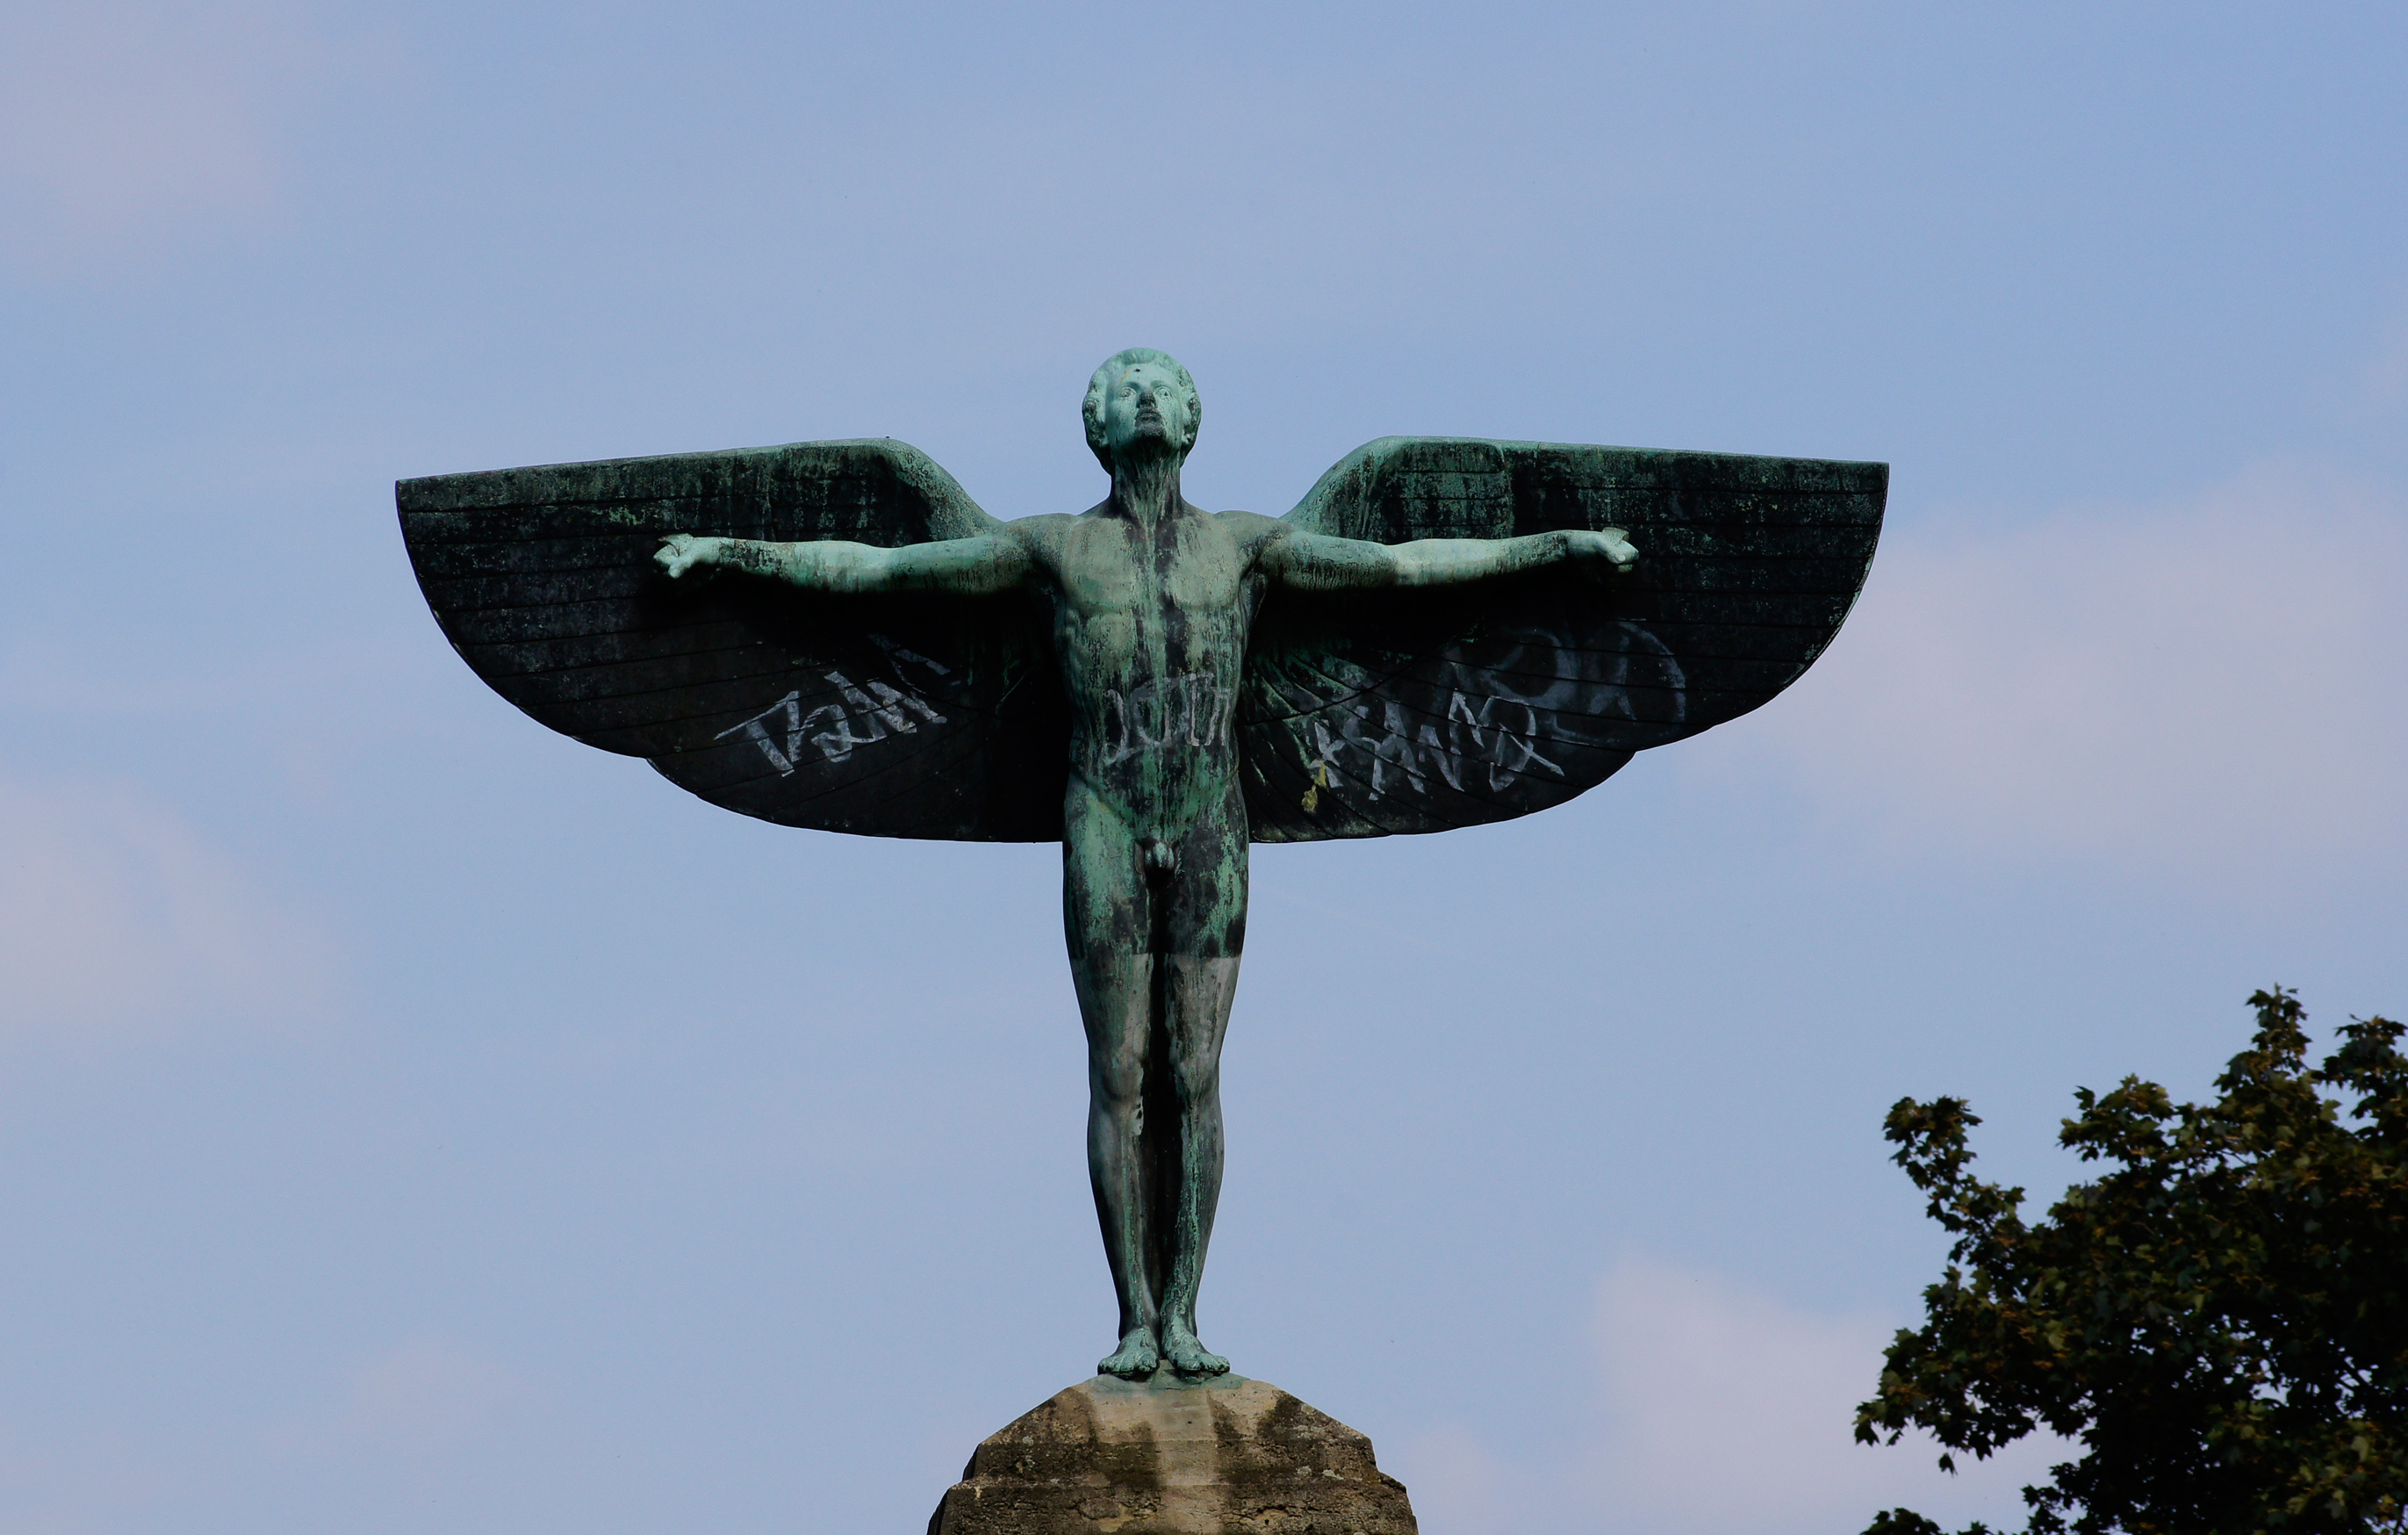 Quotes Otto Lilienthal File:otto-lilienthal-denkmal